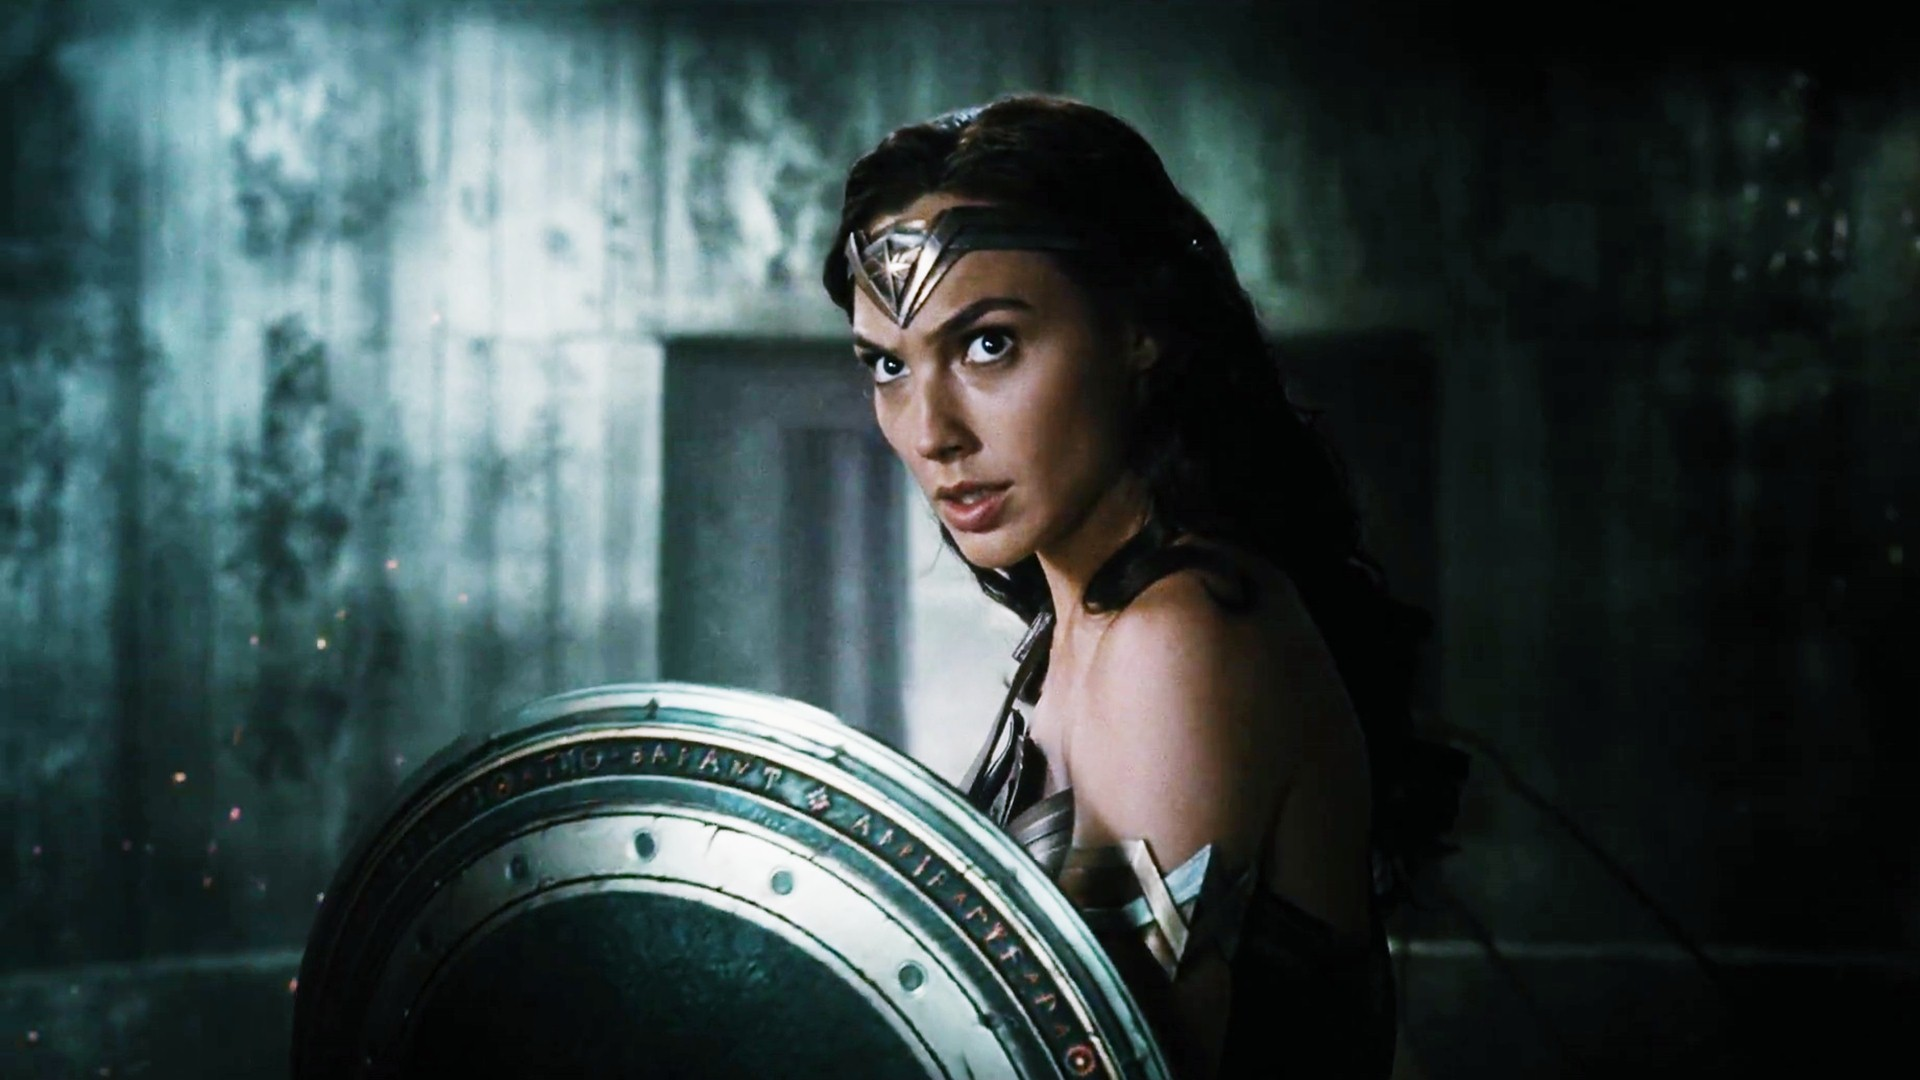 Wonder Woman Movie Wallpaper 5: 5 Movies Like Wonder Woman That Make You Feel Strong